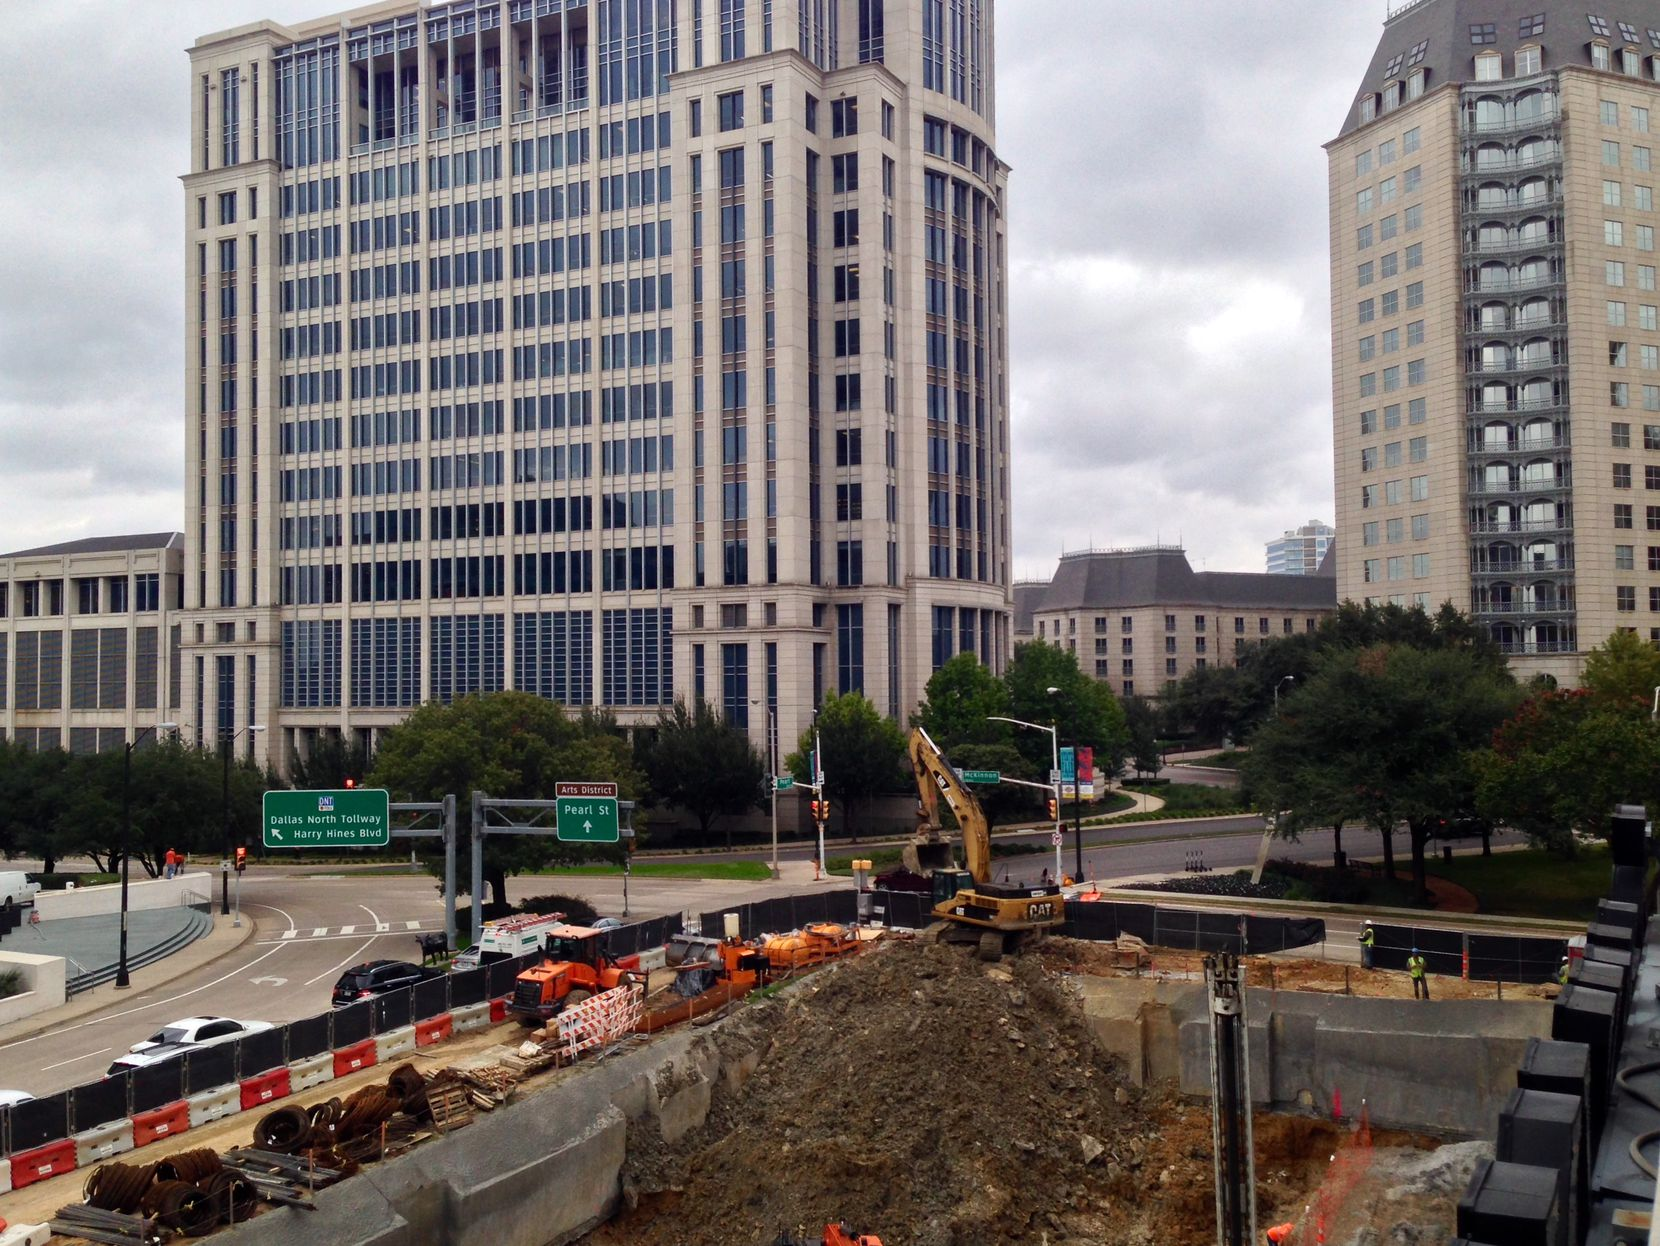 The 20-story hotel tower is under construction at Pearl and Olive streets in Dallas' Uptown area.